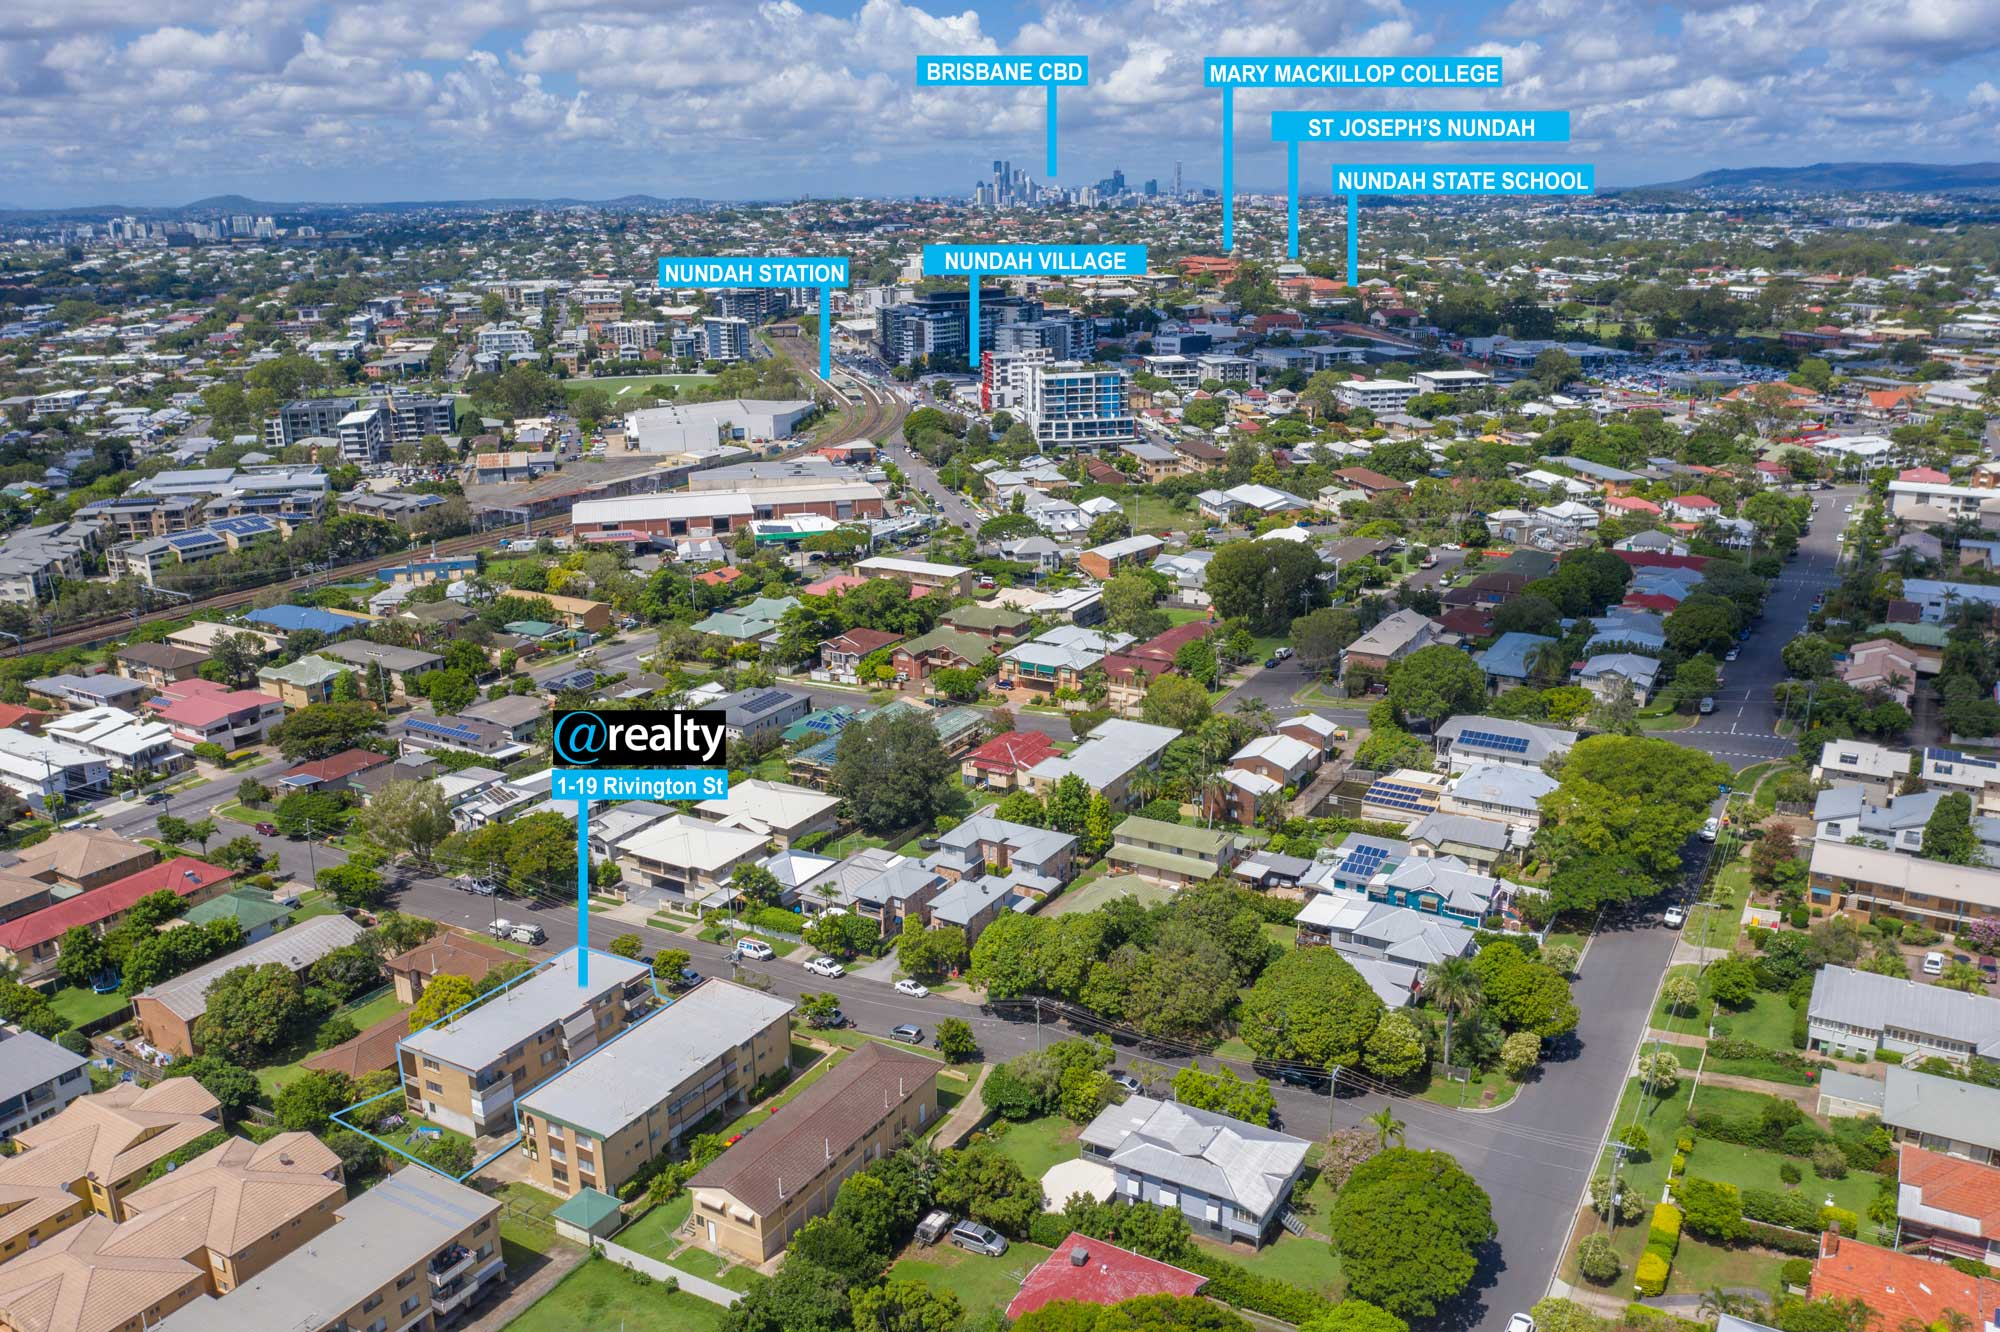 Drone photography at Nundah